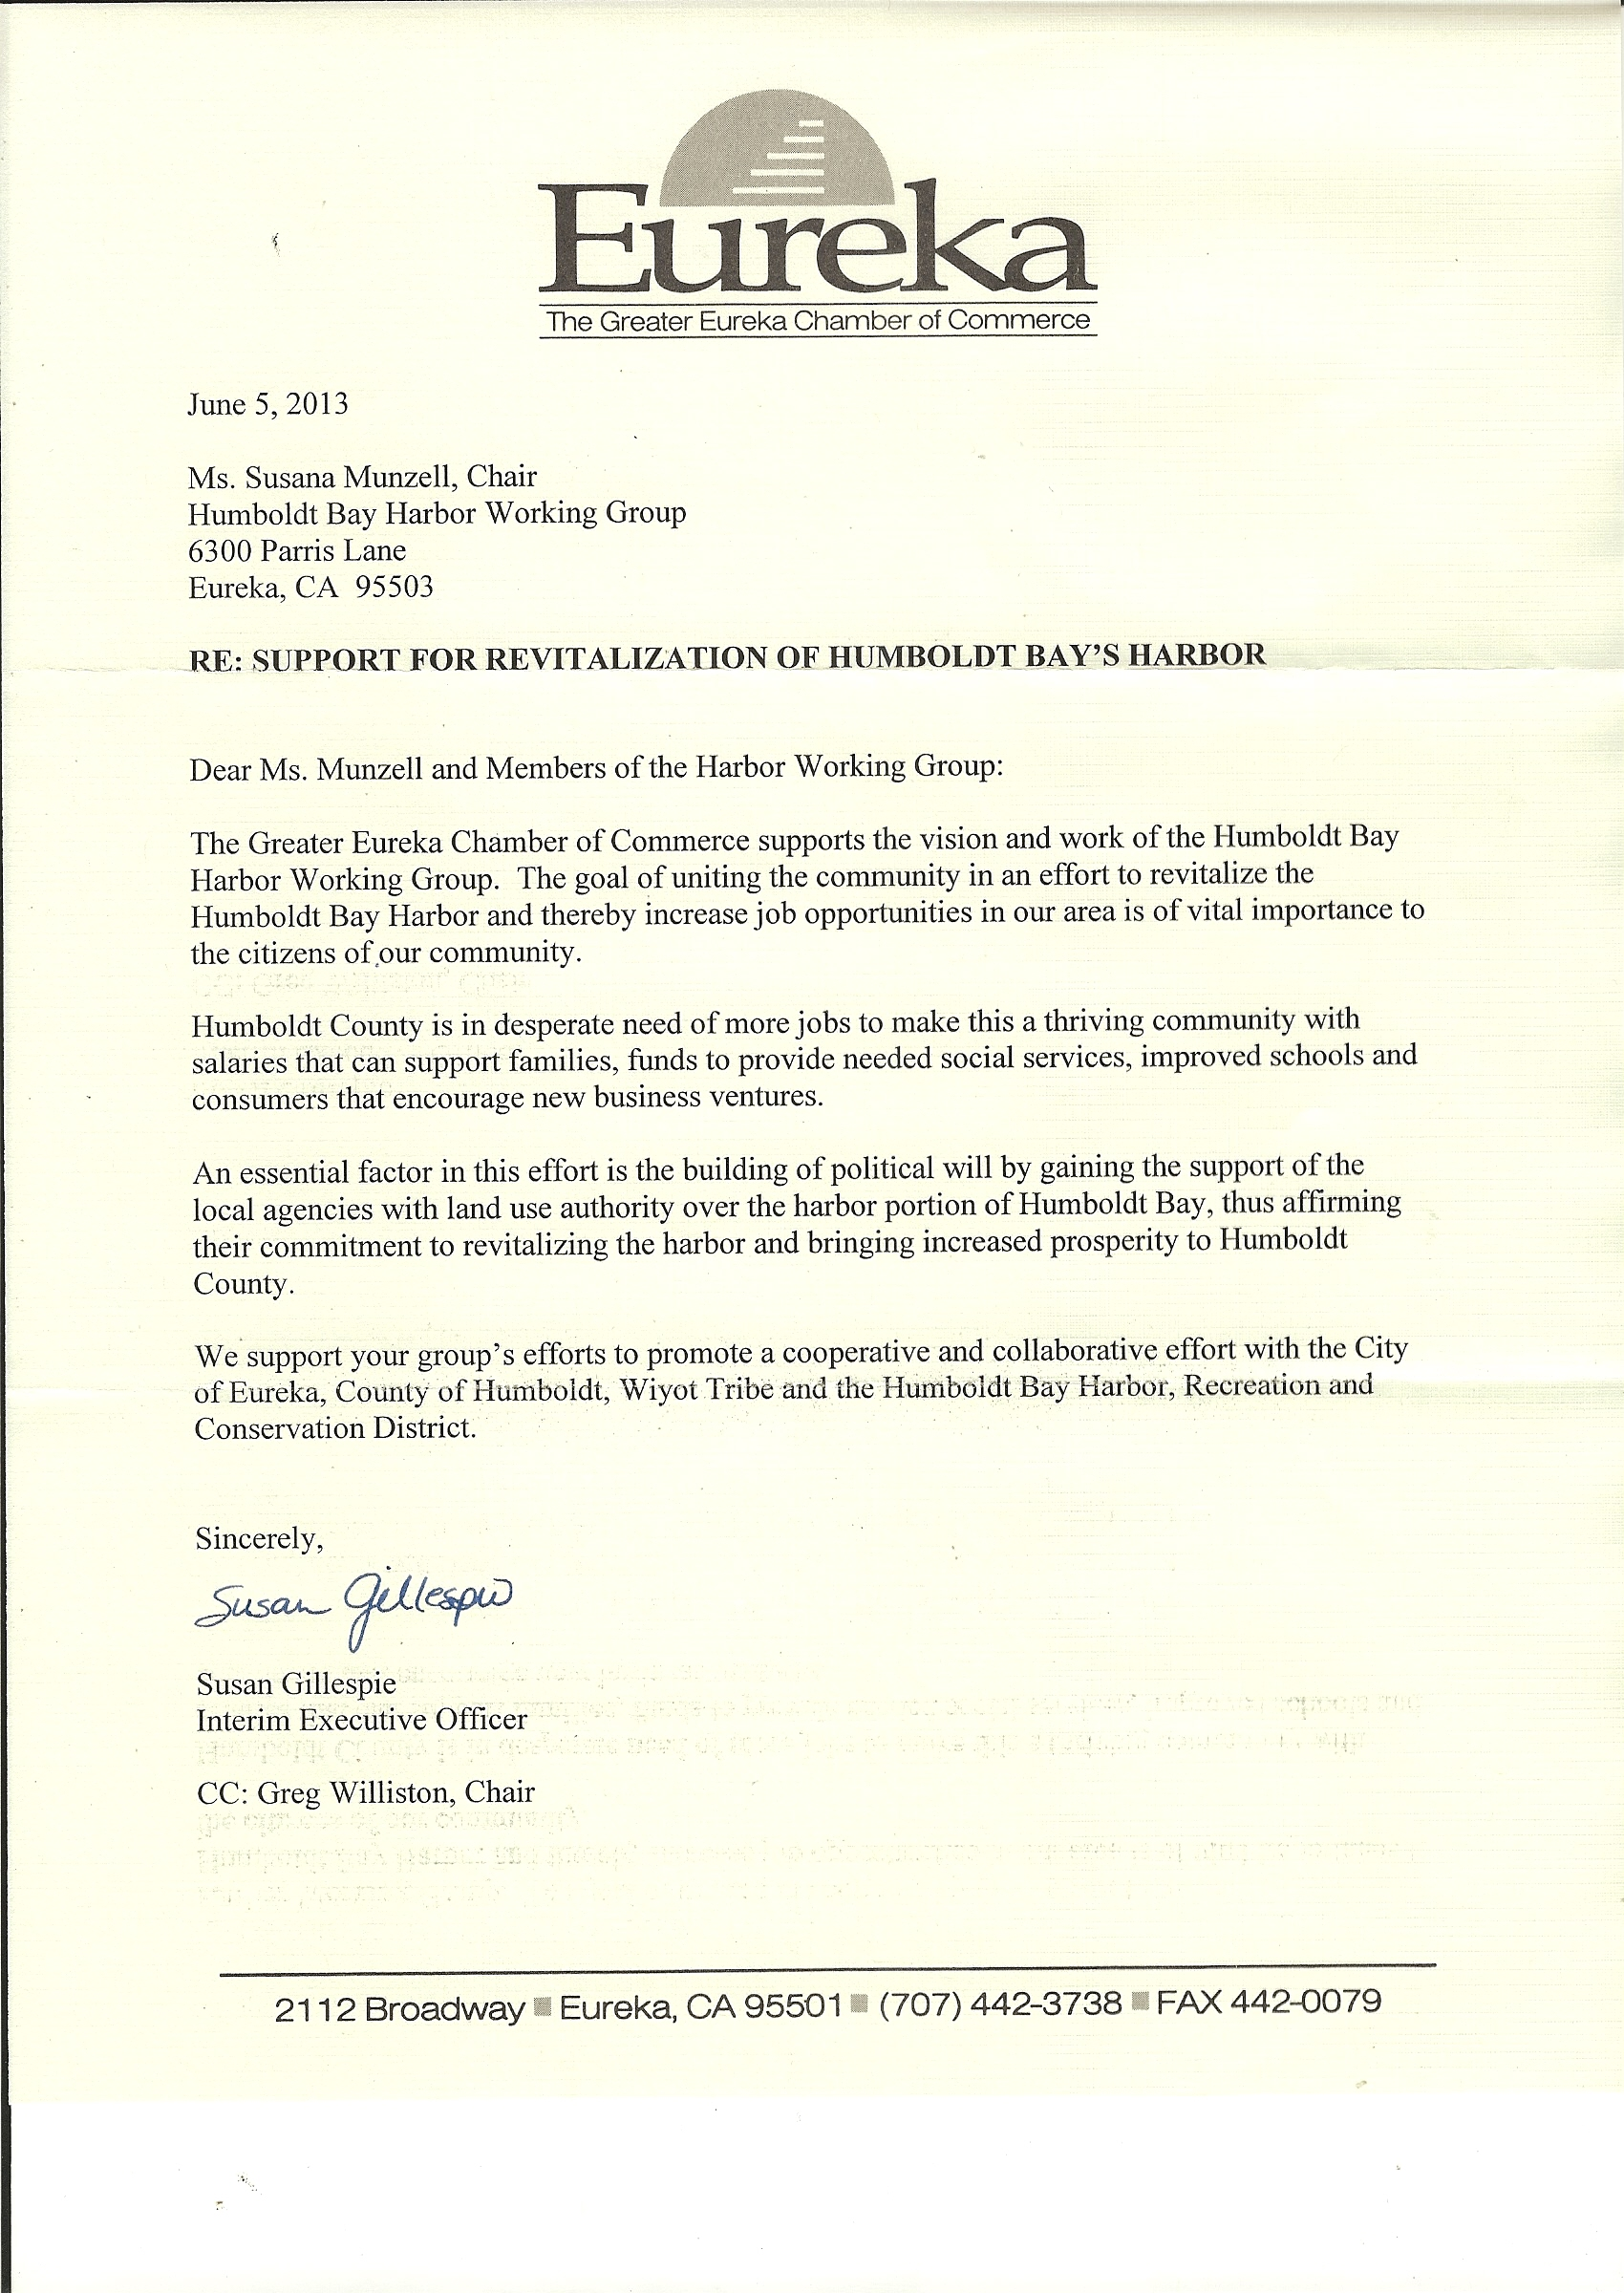 Humboldt Bay Harbor Working Group - Support